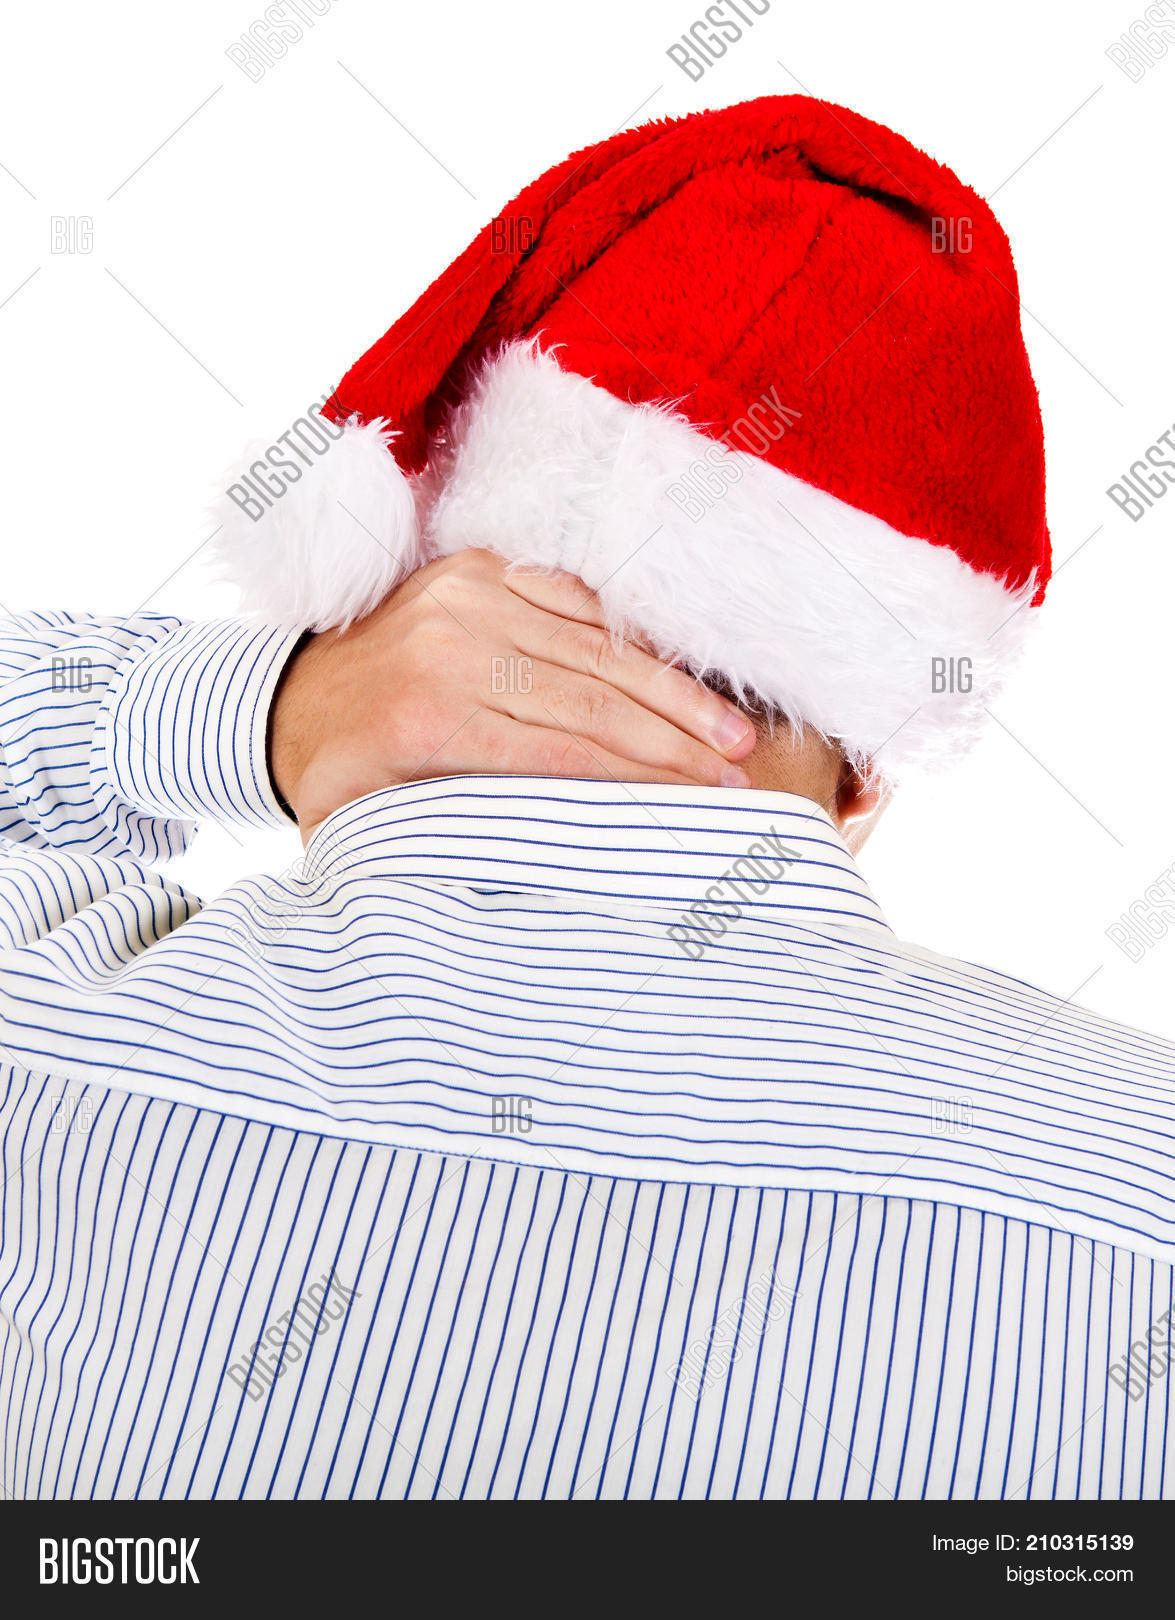 ache,back,cap,caucasian,cervical,christmas,closeup,diseased,guy,hat,head,hold,holding,holiday,hurt,ill,illness,indoor,injury,isolated,jugular,lad,male,man,neck,neckache,noel,occipital,one,orthopedic,osteochondrosis,overwork,pain,painful,problem,rear,santa,sickness,single,stand,suffer,teenager,tired,trouble,vertebra,view,xmas,young,youth